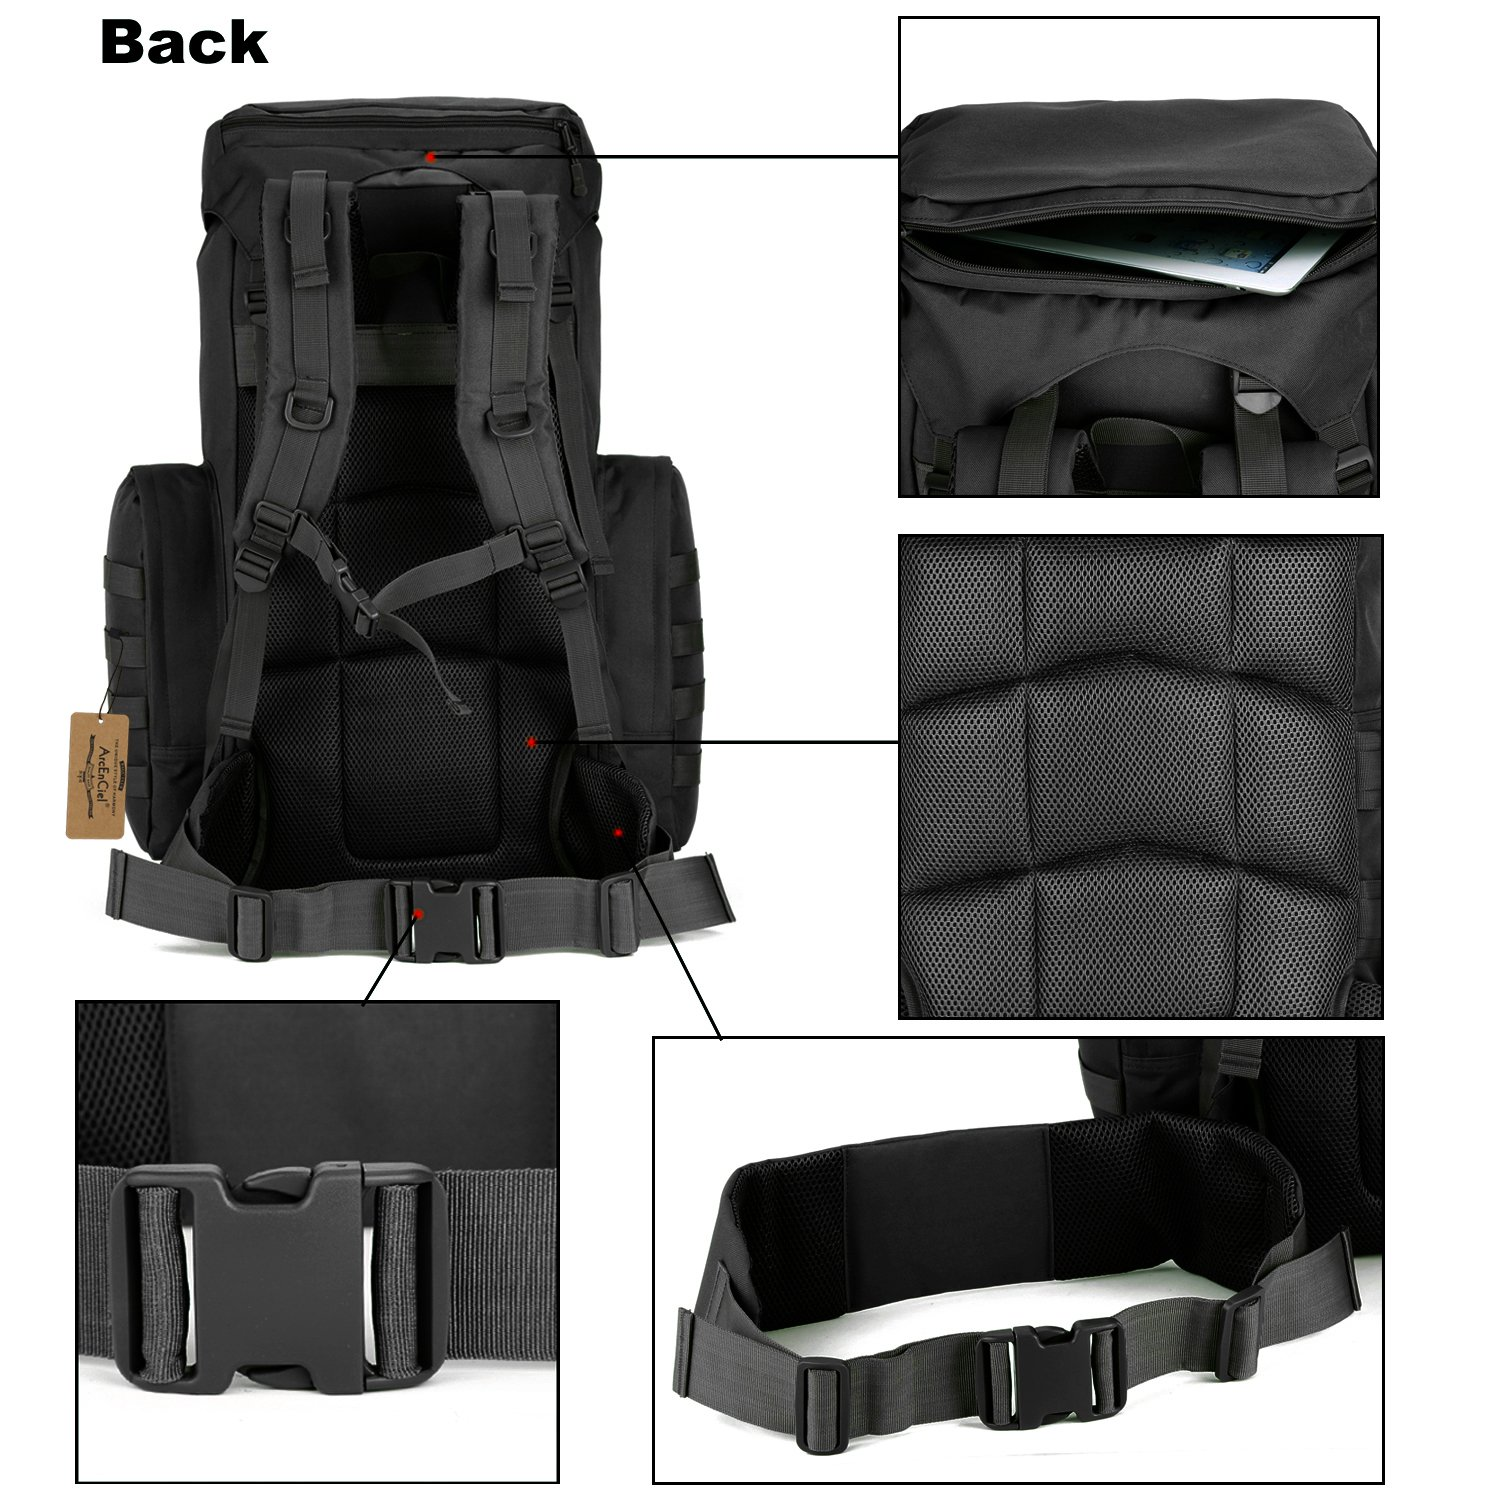 ArcEnCiel 70-85L Large Capacity Tactical Travel Backpack MOLLE Rucksack Outdoor Travel Bag for Travelling Trekking Camping Hiking Hunting -Rain Cover Included (Black) by ArcEnCiel (Image #3)